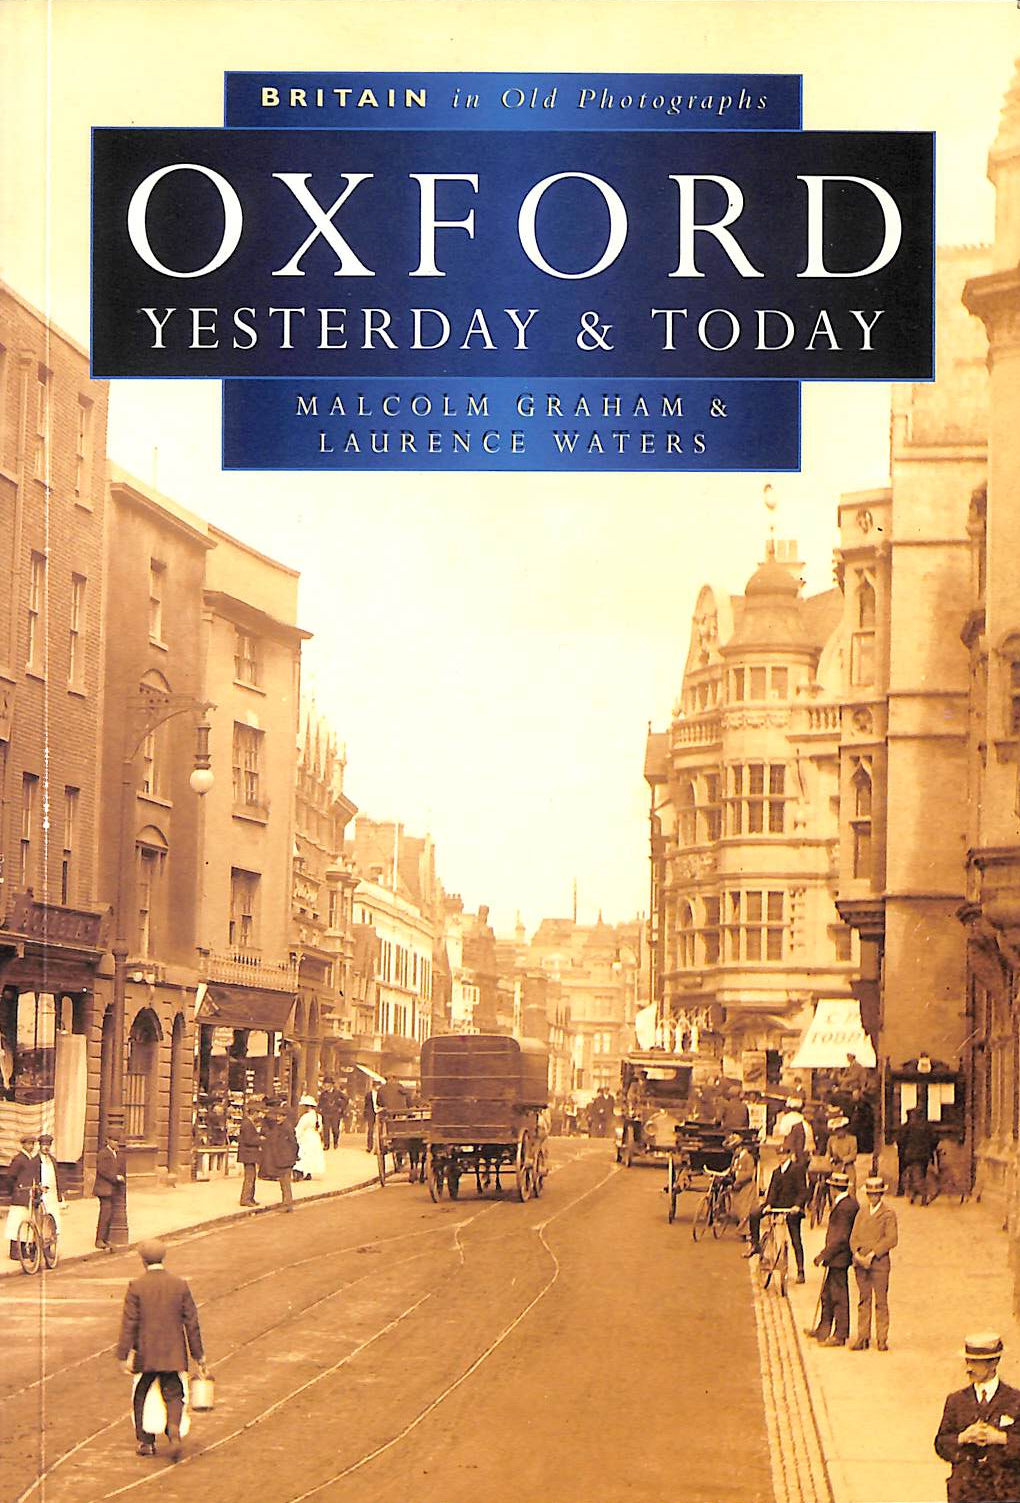 Image for Oxford Past And Present In Old Photographs (Britain In Old Photographs)